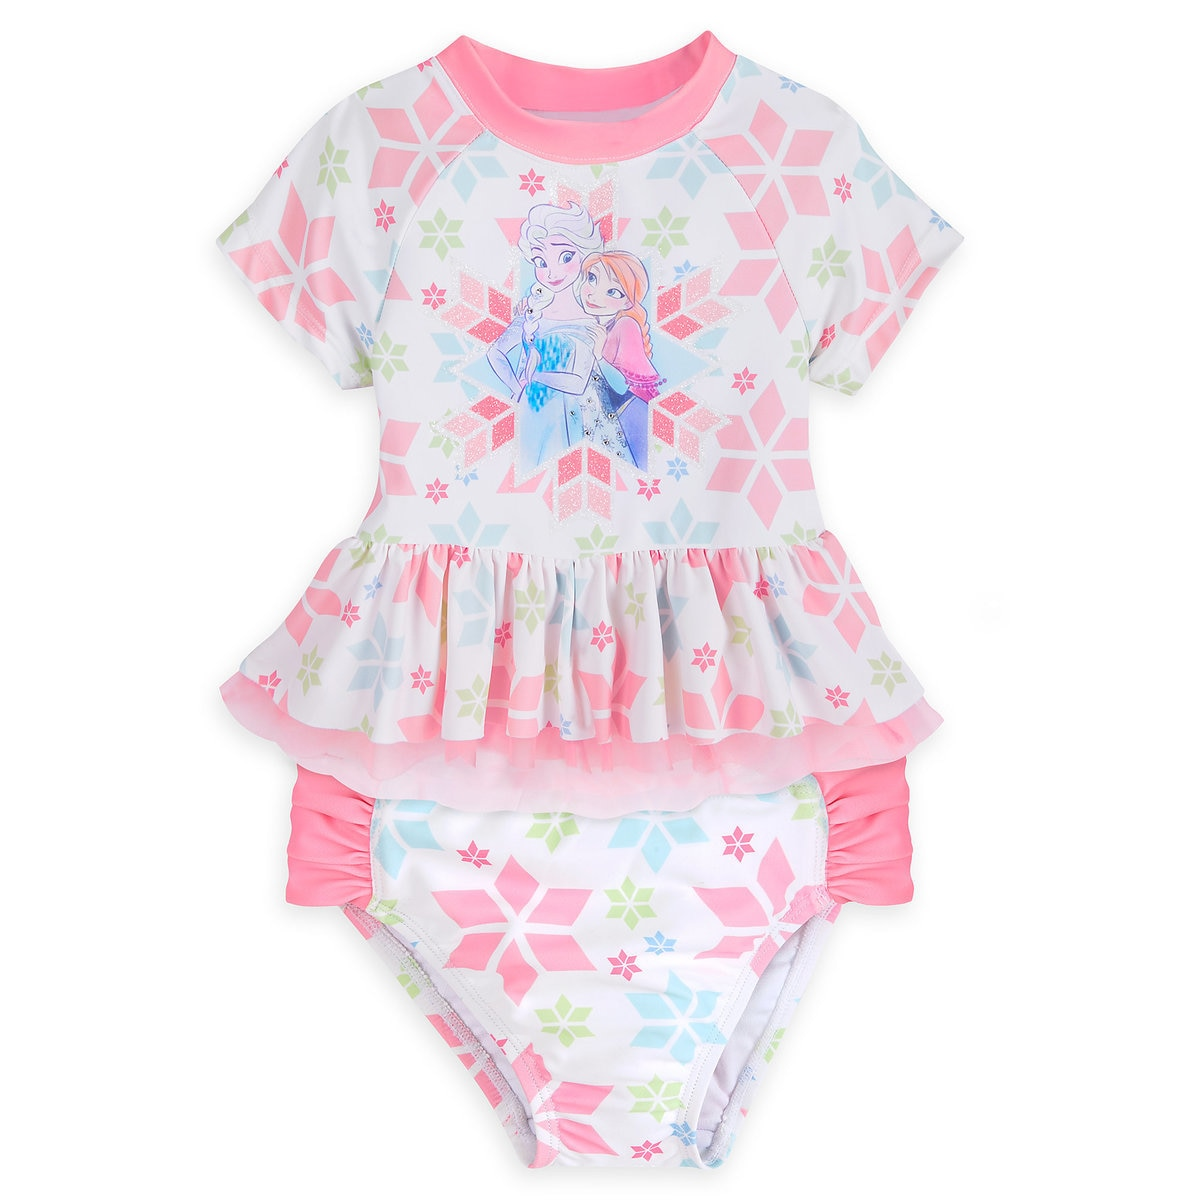 63fec6c0d4 Product Image of Frozen Two-Piece Swimsuit for Girls # 1